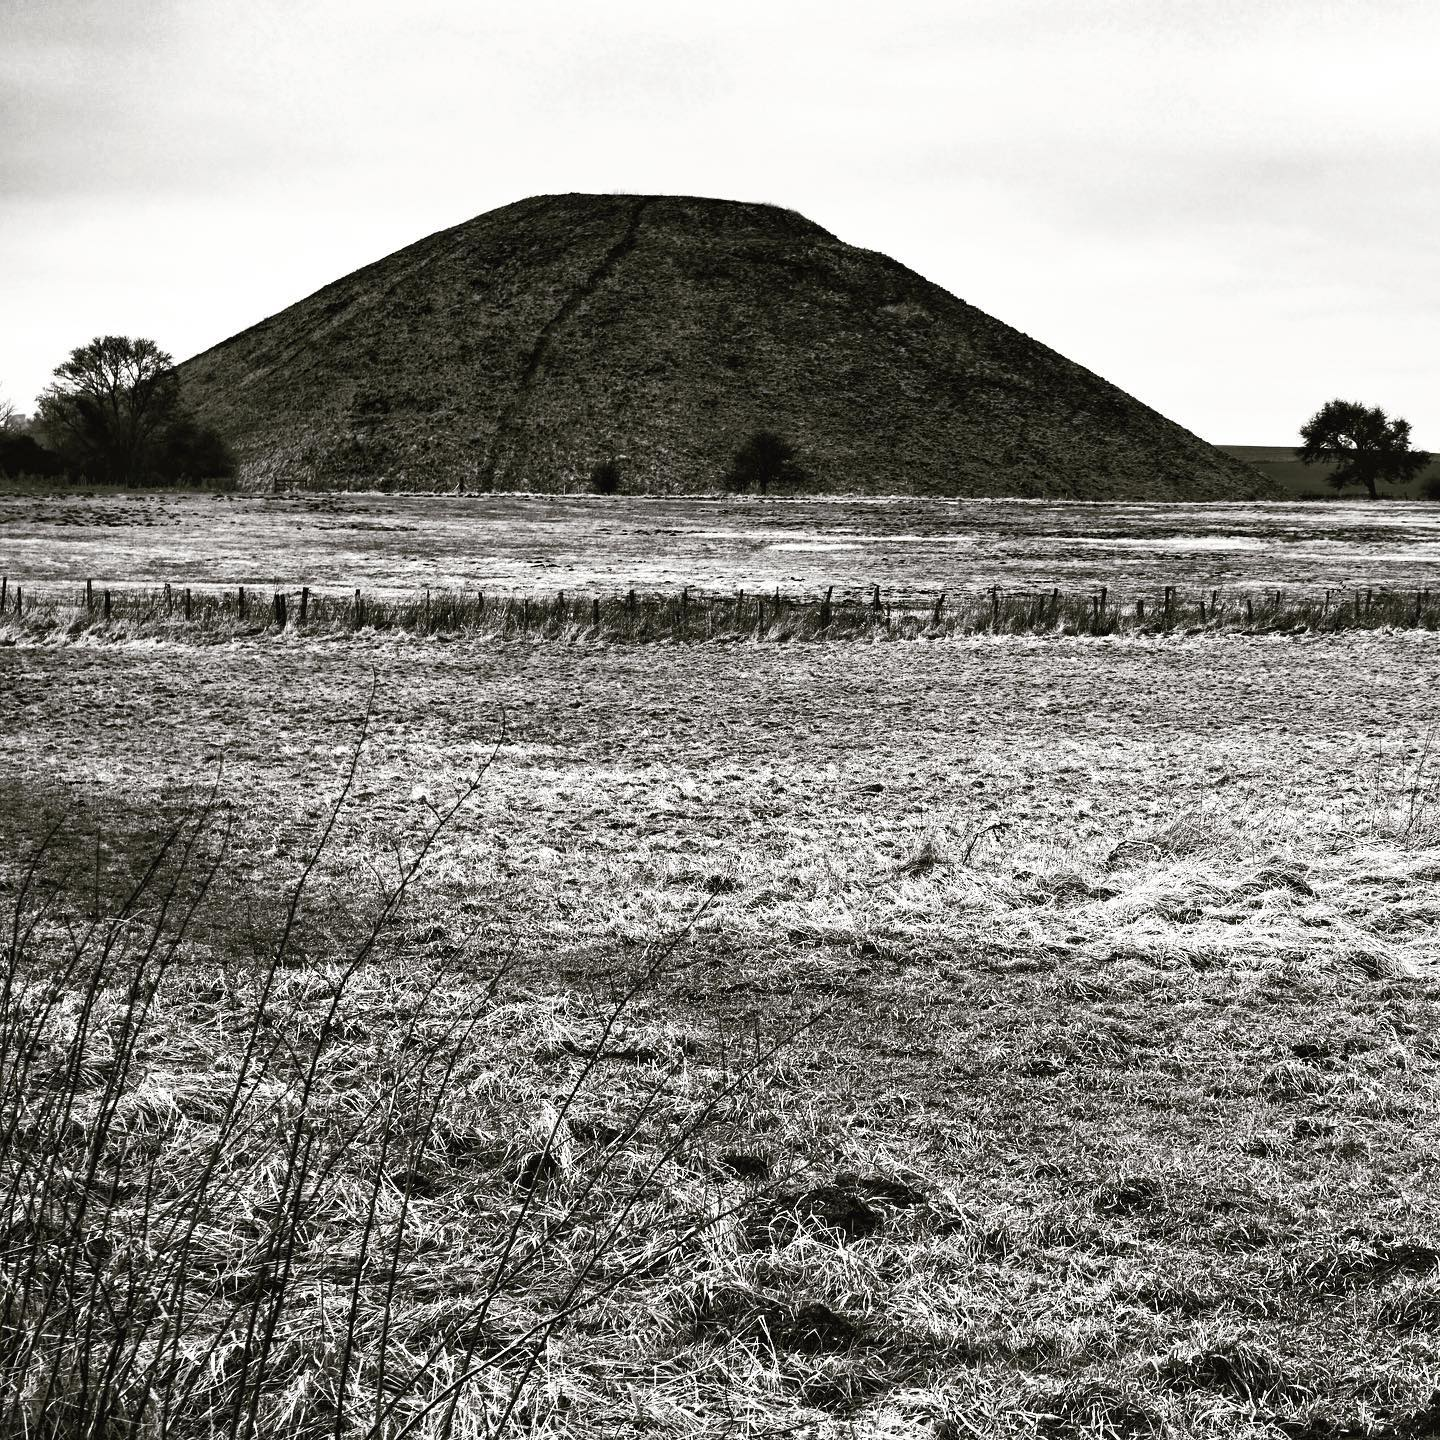 silbury hill avebury. during the late neolithic and early bronze age, the landscape around west kennet long barrow was subject to the widespread construction of ceremonial monuments, among them the avebury henge and stone circles, the west kennet avenue, the sanctuary, and silbury hill. the largest artificial hill monument in europe. #silburyhill #avebury #westkennet #artificialhill